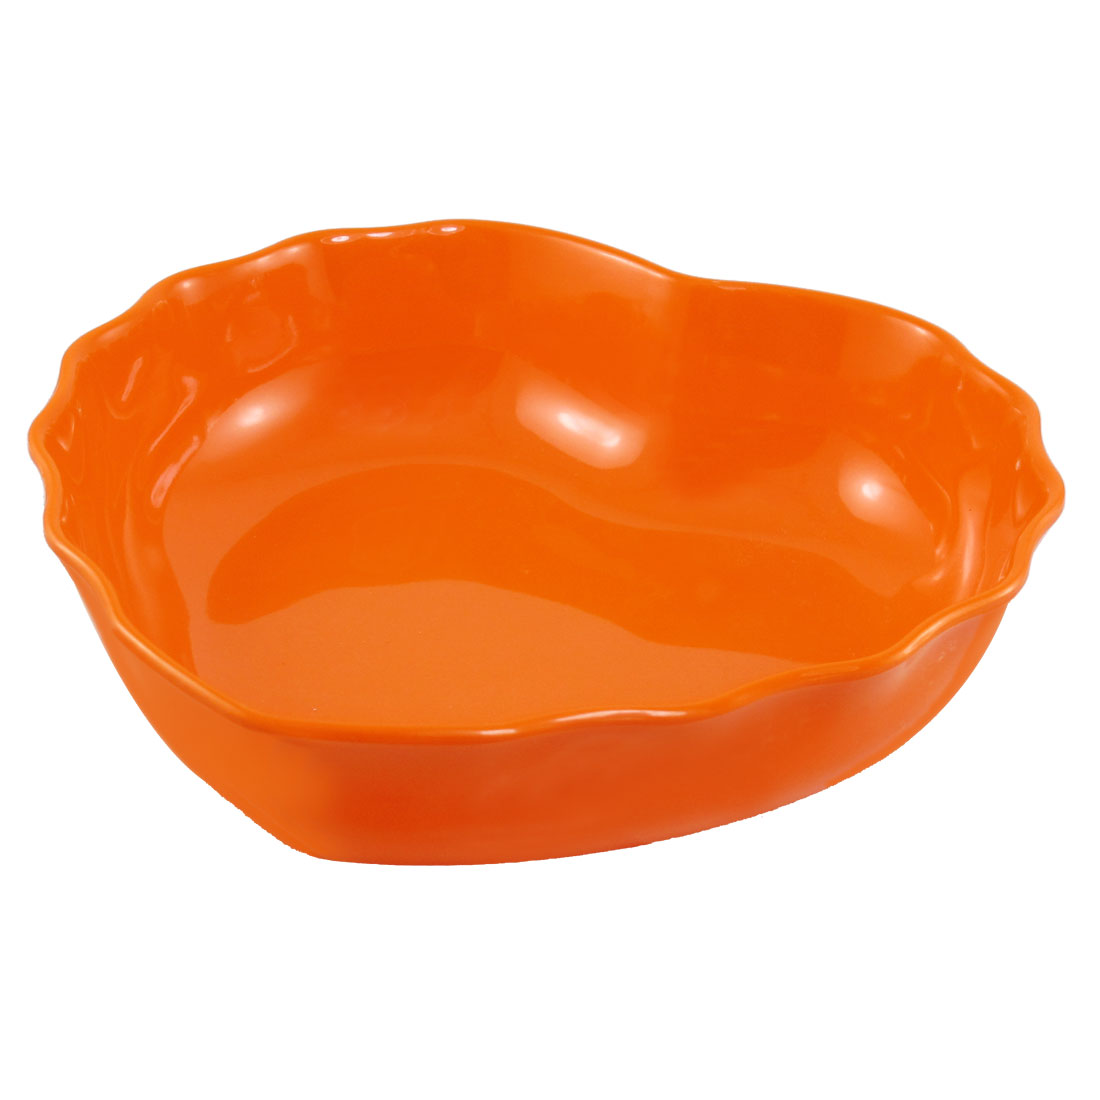 Orange Wavy Hem Fruit Vegetable Plate Container for Home Kitchen